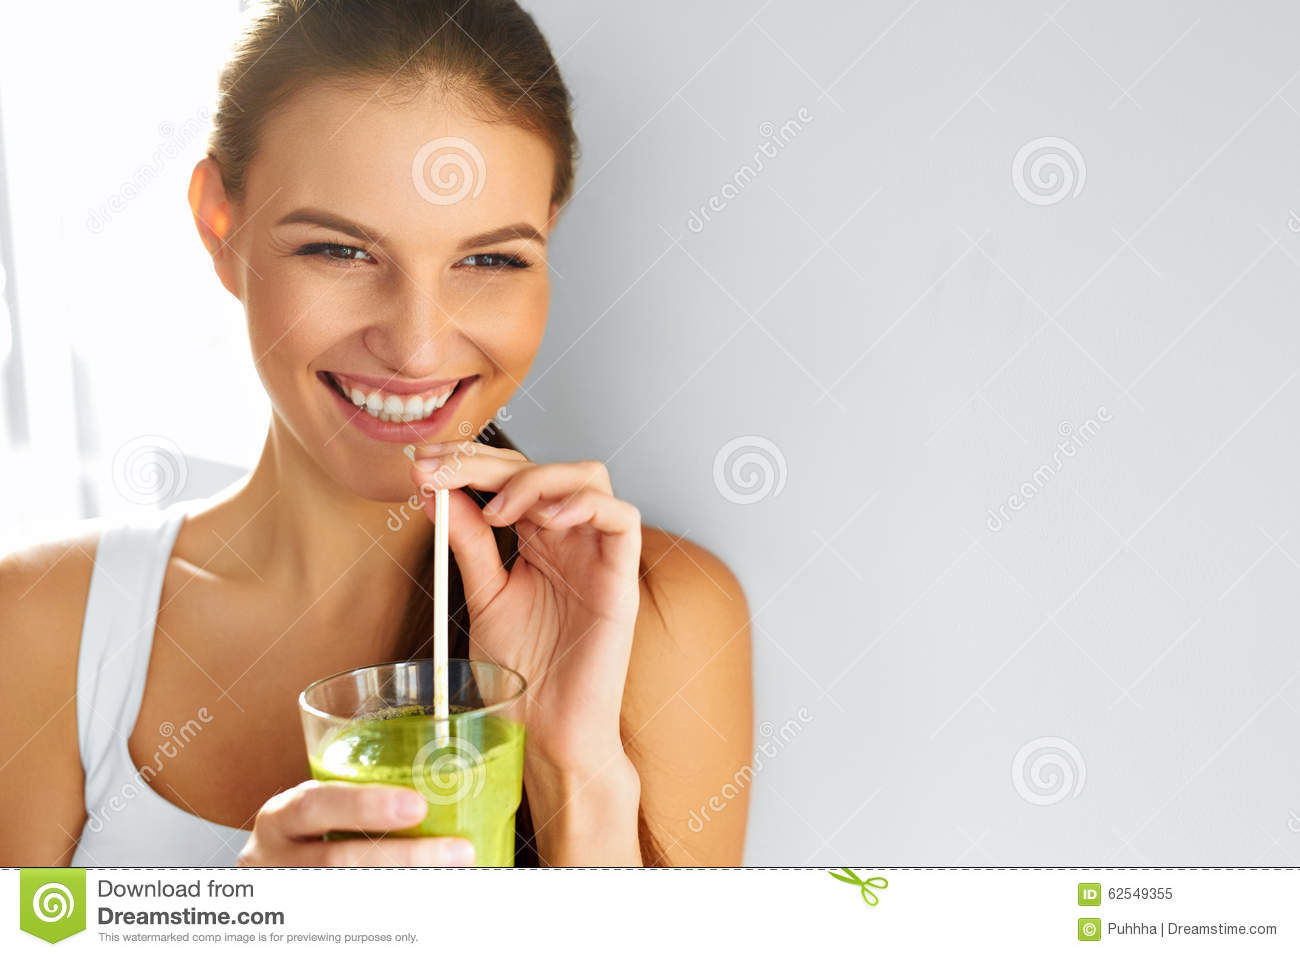 Healthy Food Eating. Woman Drinking Smoothie. Diet. Lifestyle. N